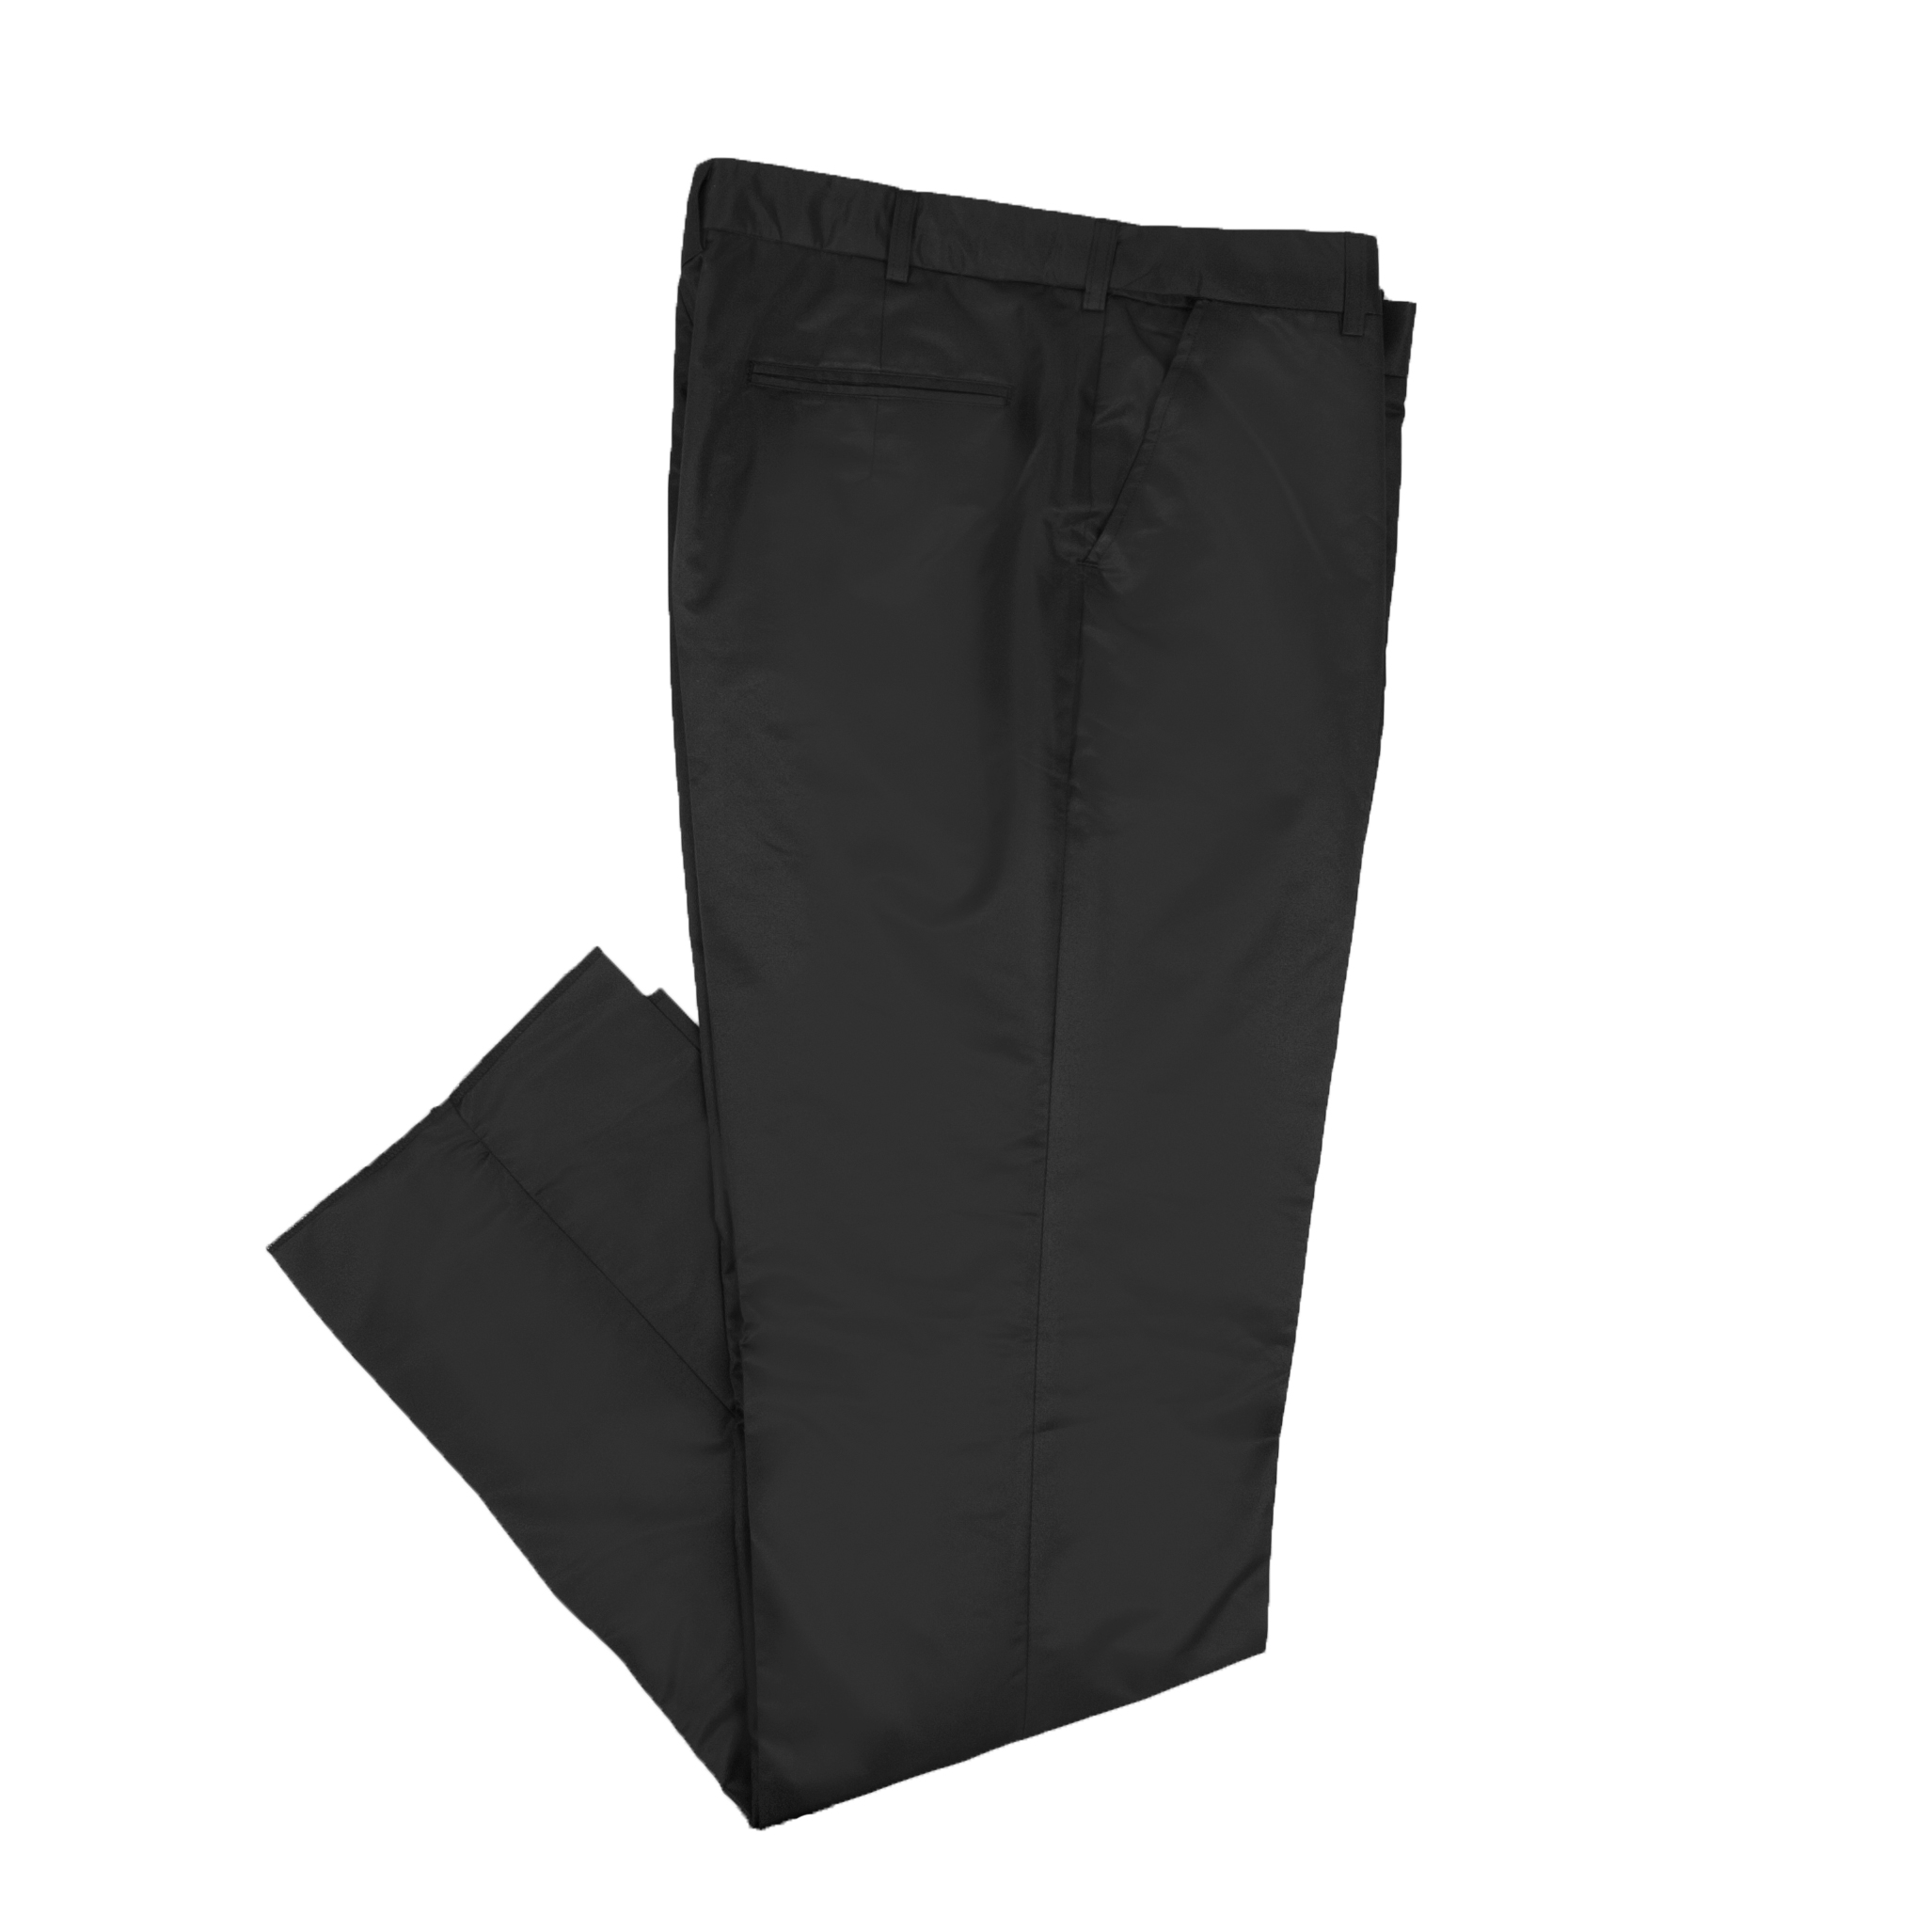 A Galway Bay Apparel pair of pants